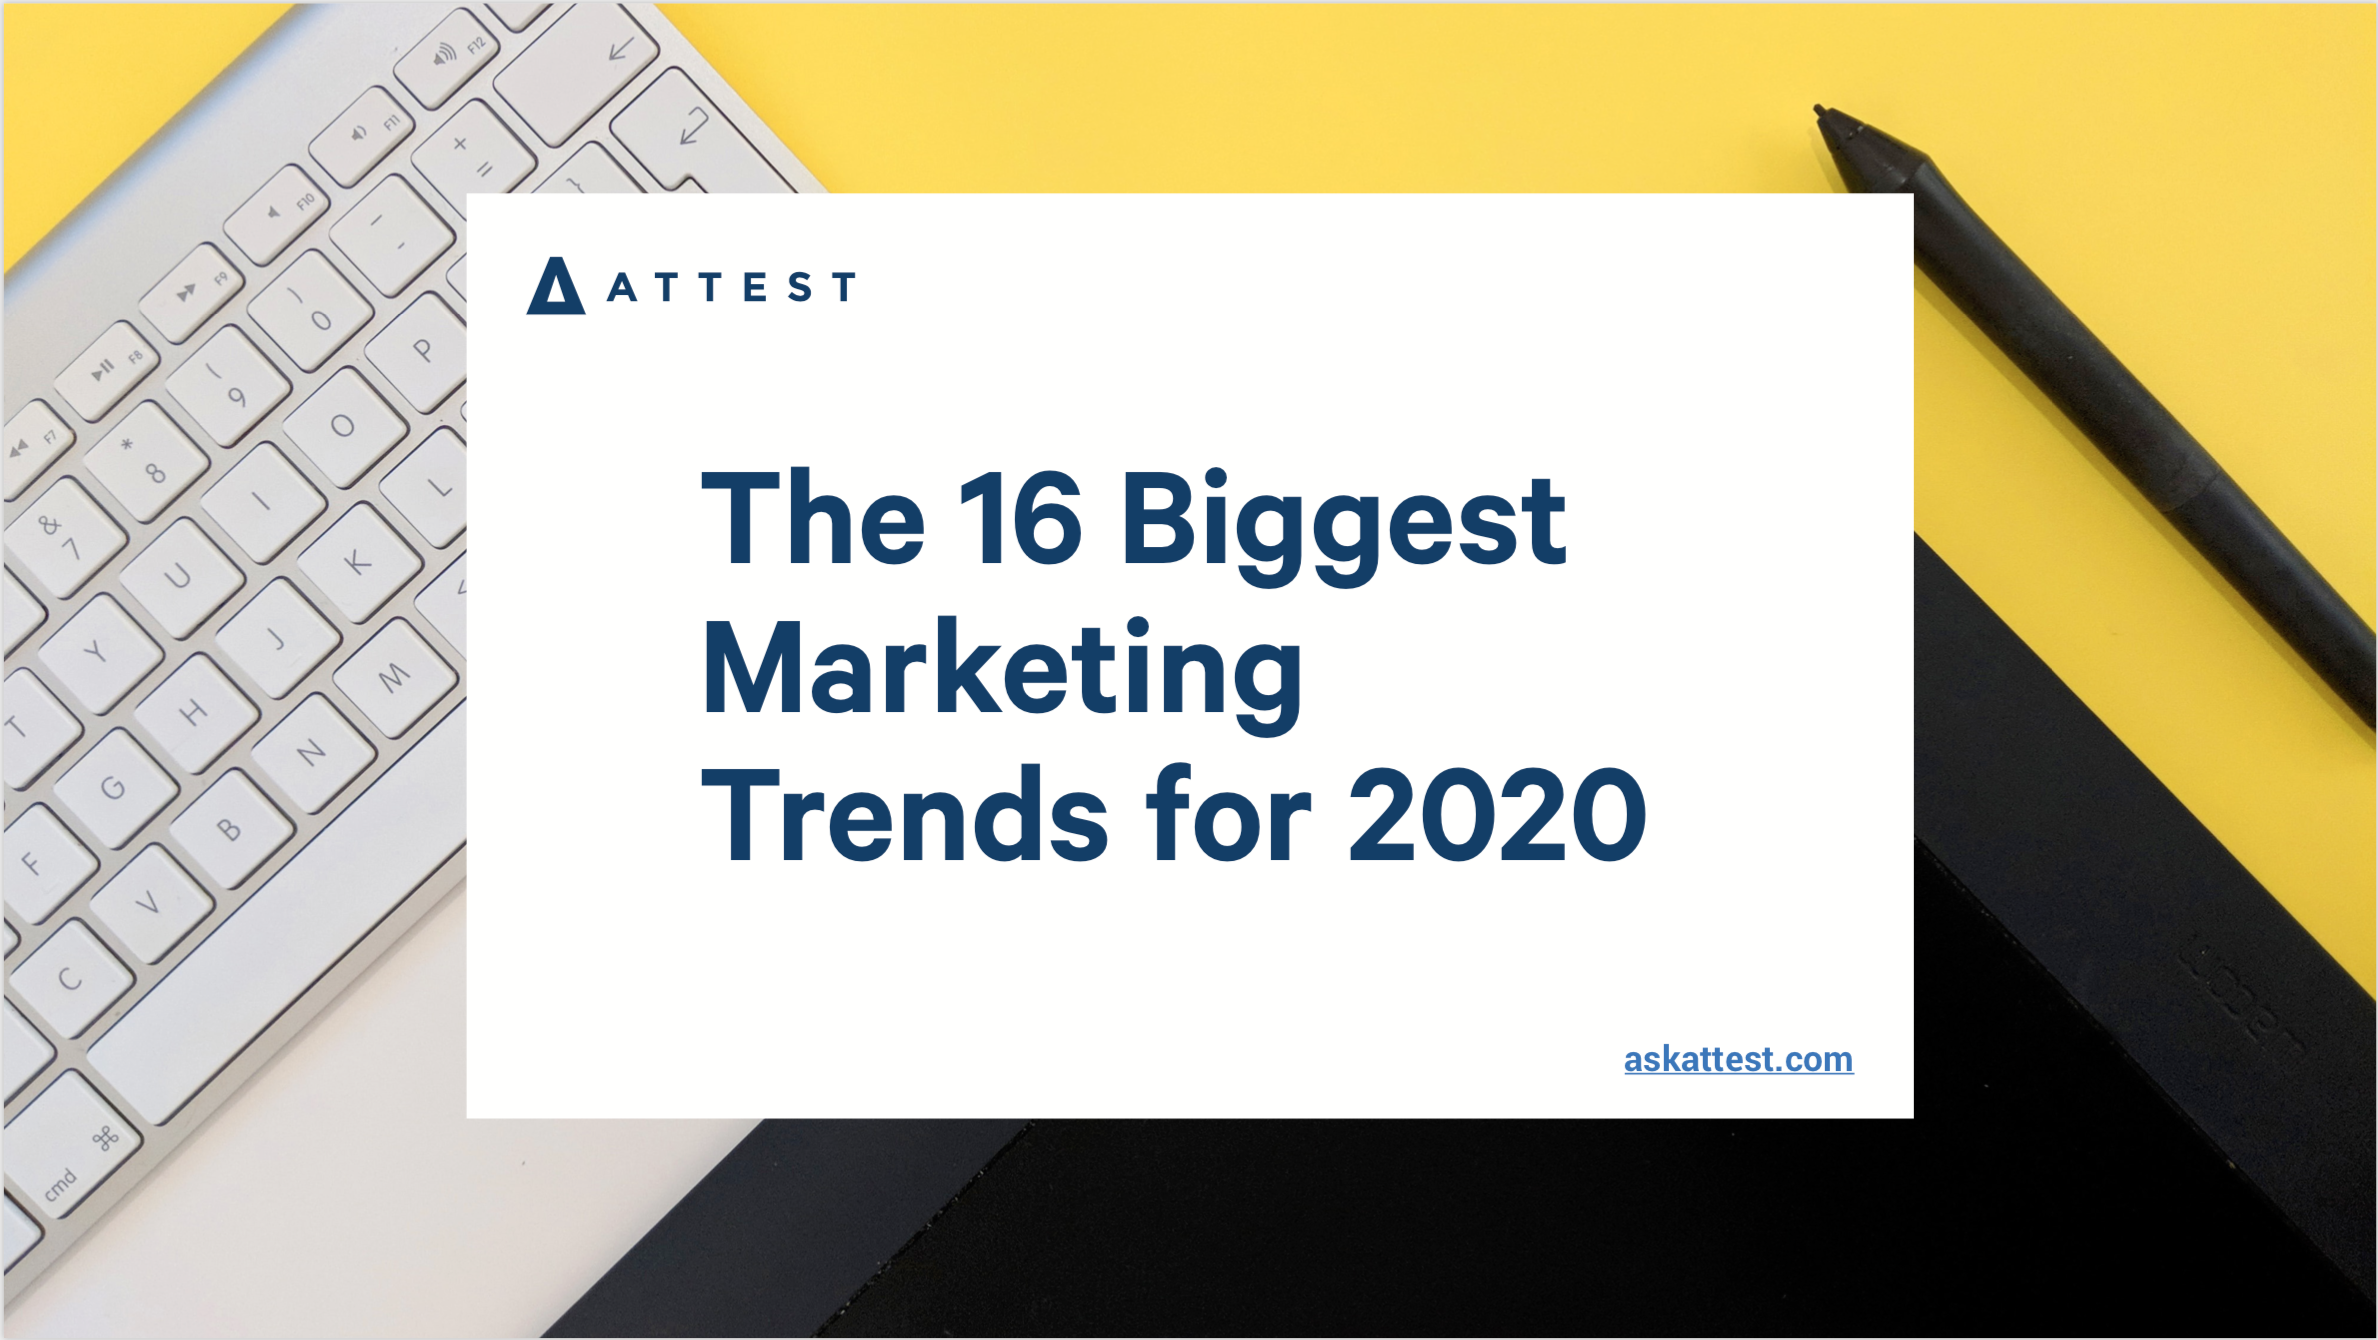 The 16 Biggest Marketing Trends for 2020